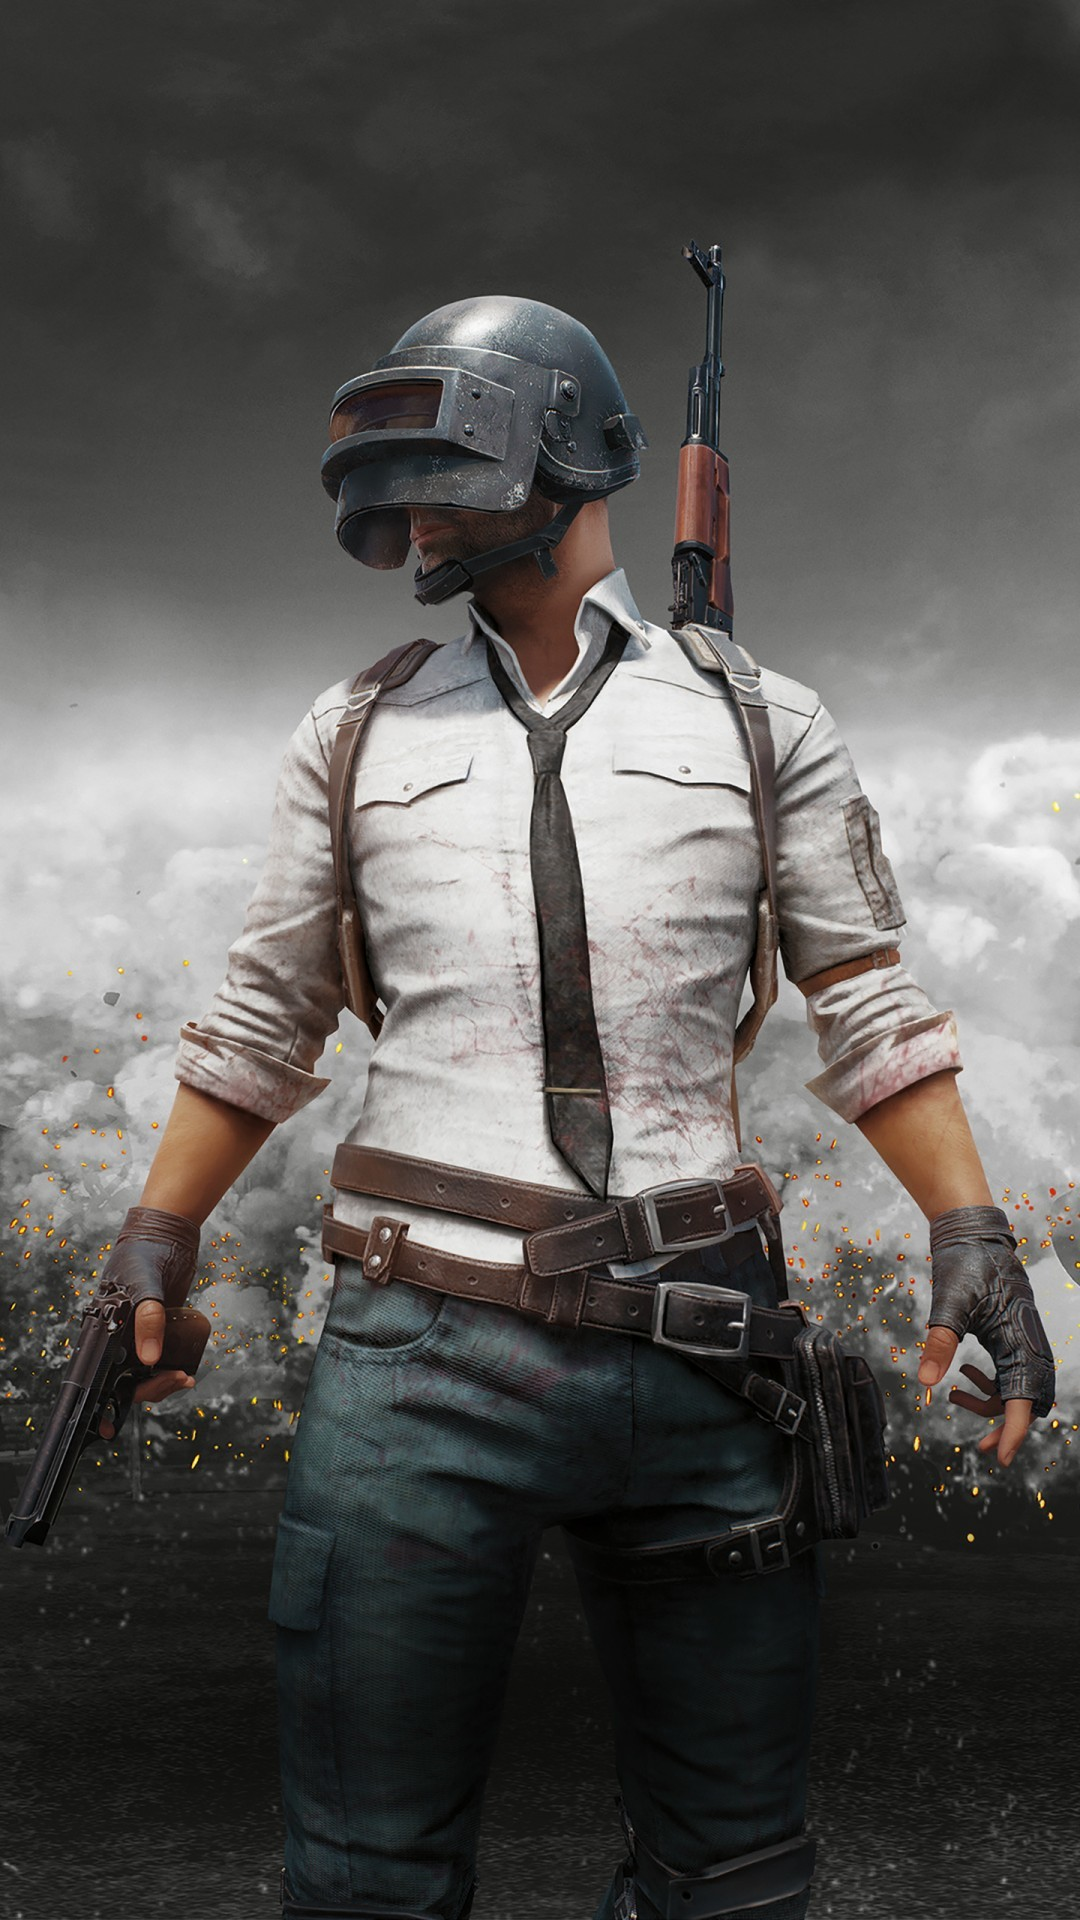 Free PUBG PlayerUnknowns Battlegrounds phone wallpaper by justme2be